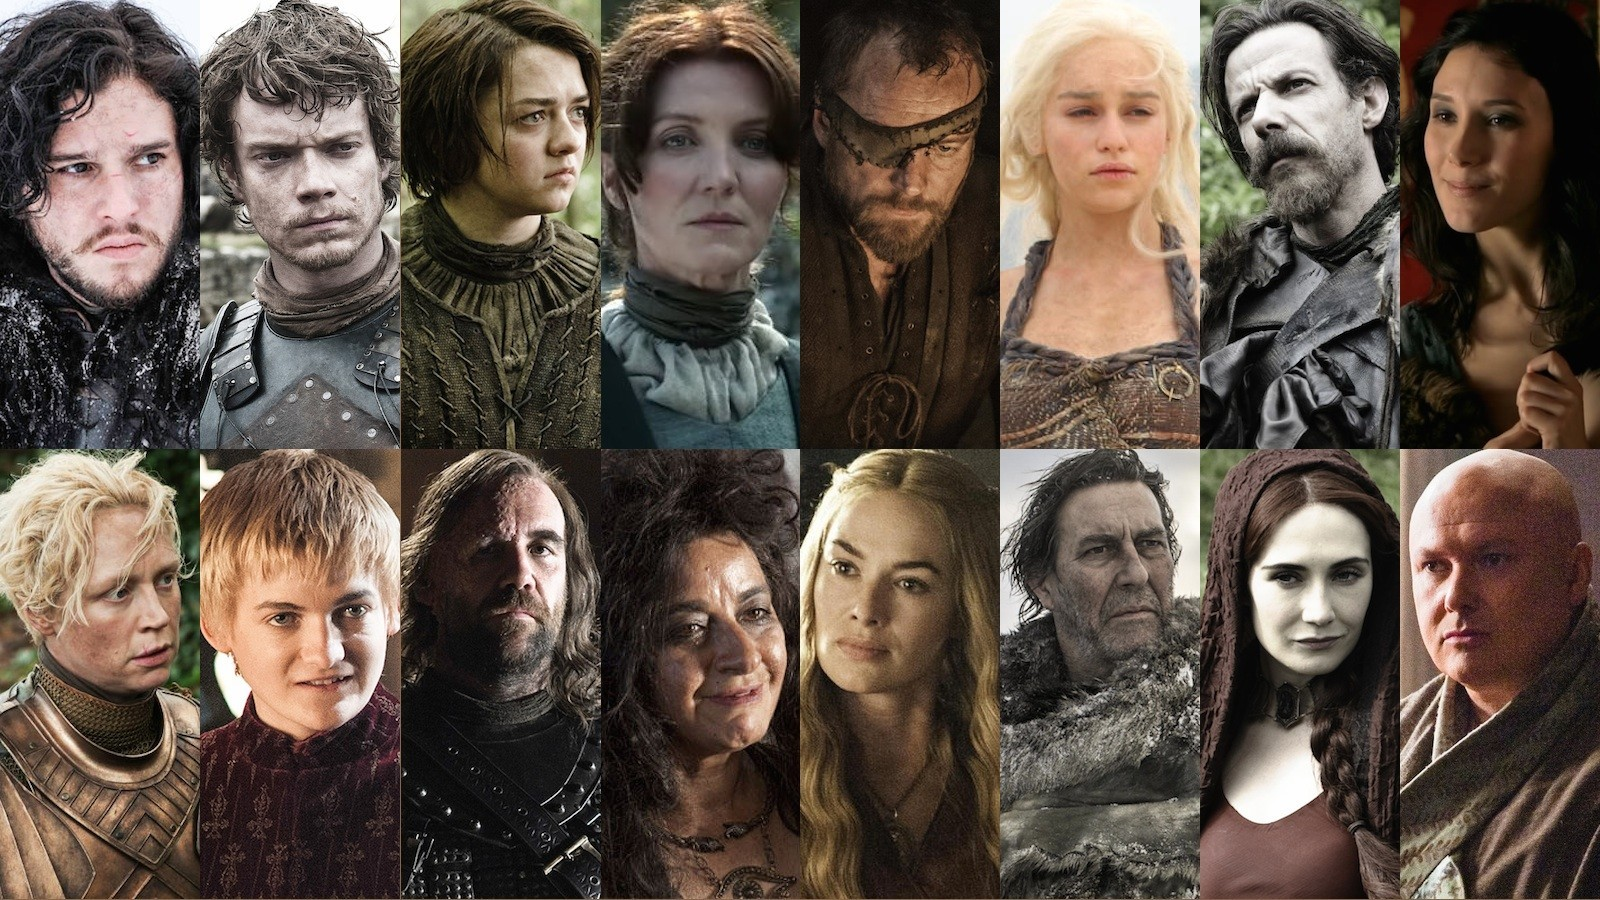 Which of the characters in the game series throne represent your personality?